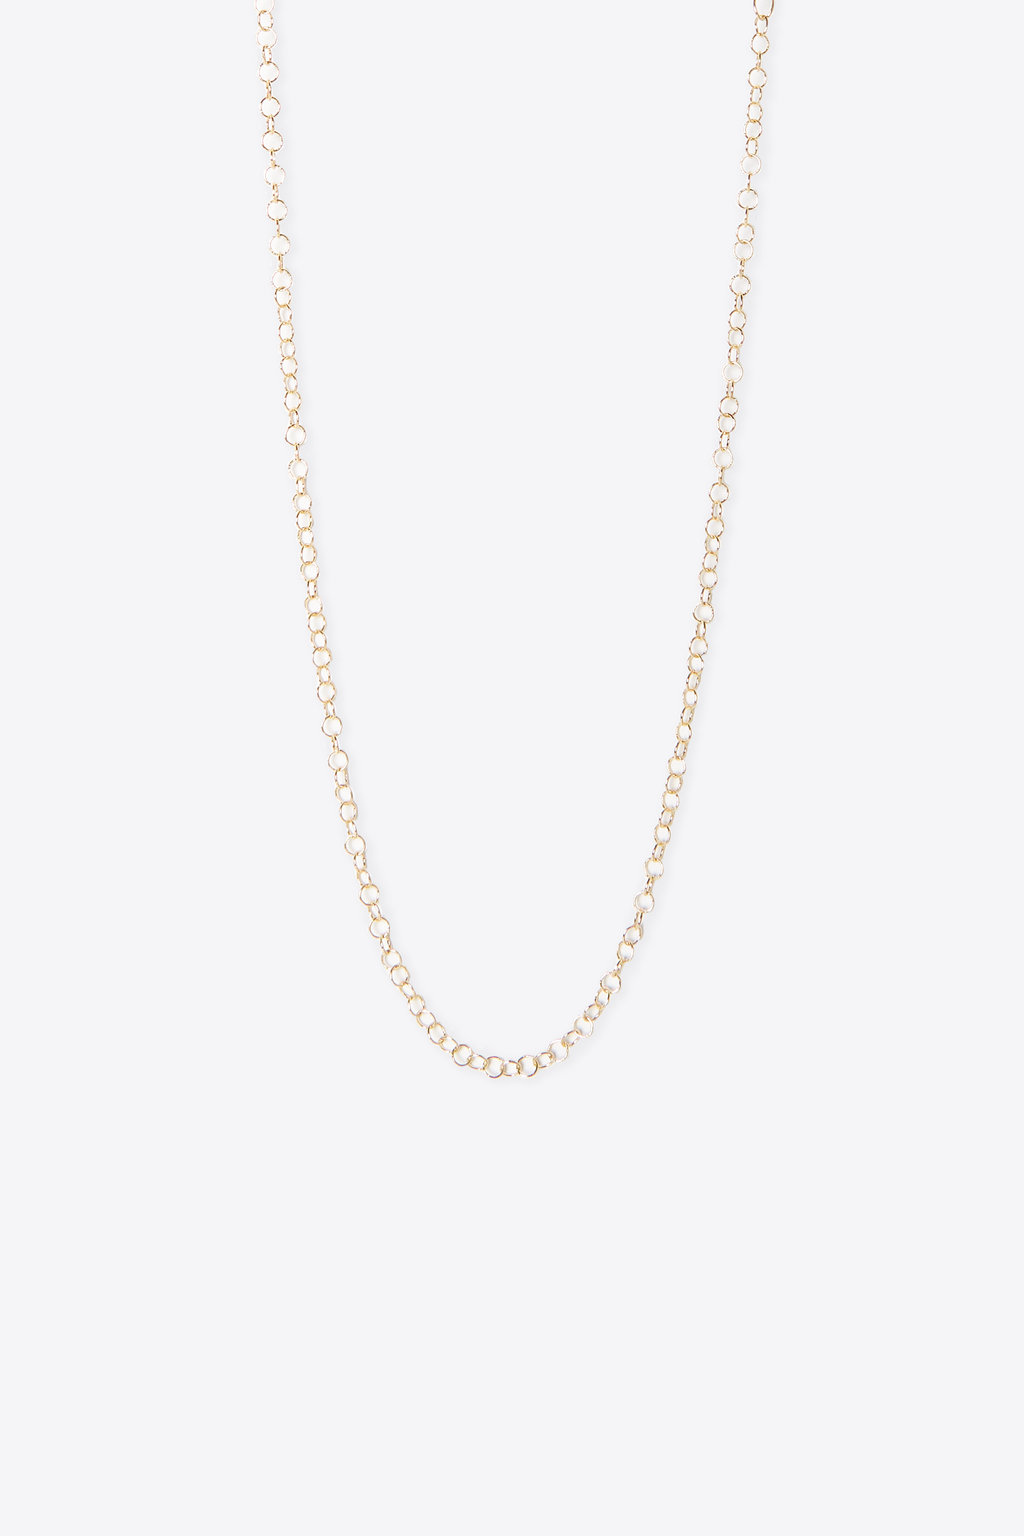 Necklace H003 Gold 2